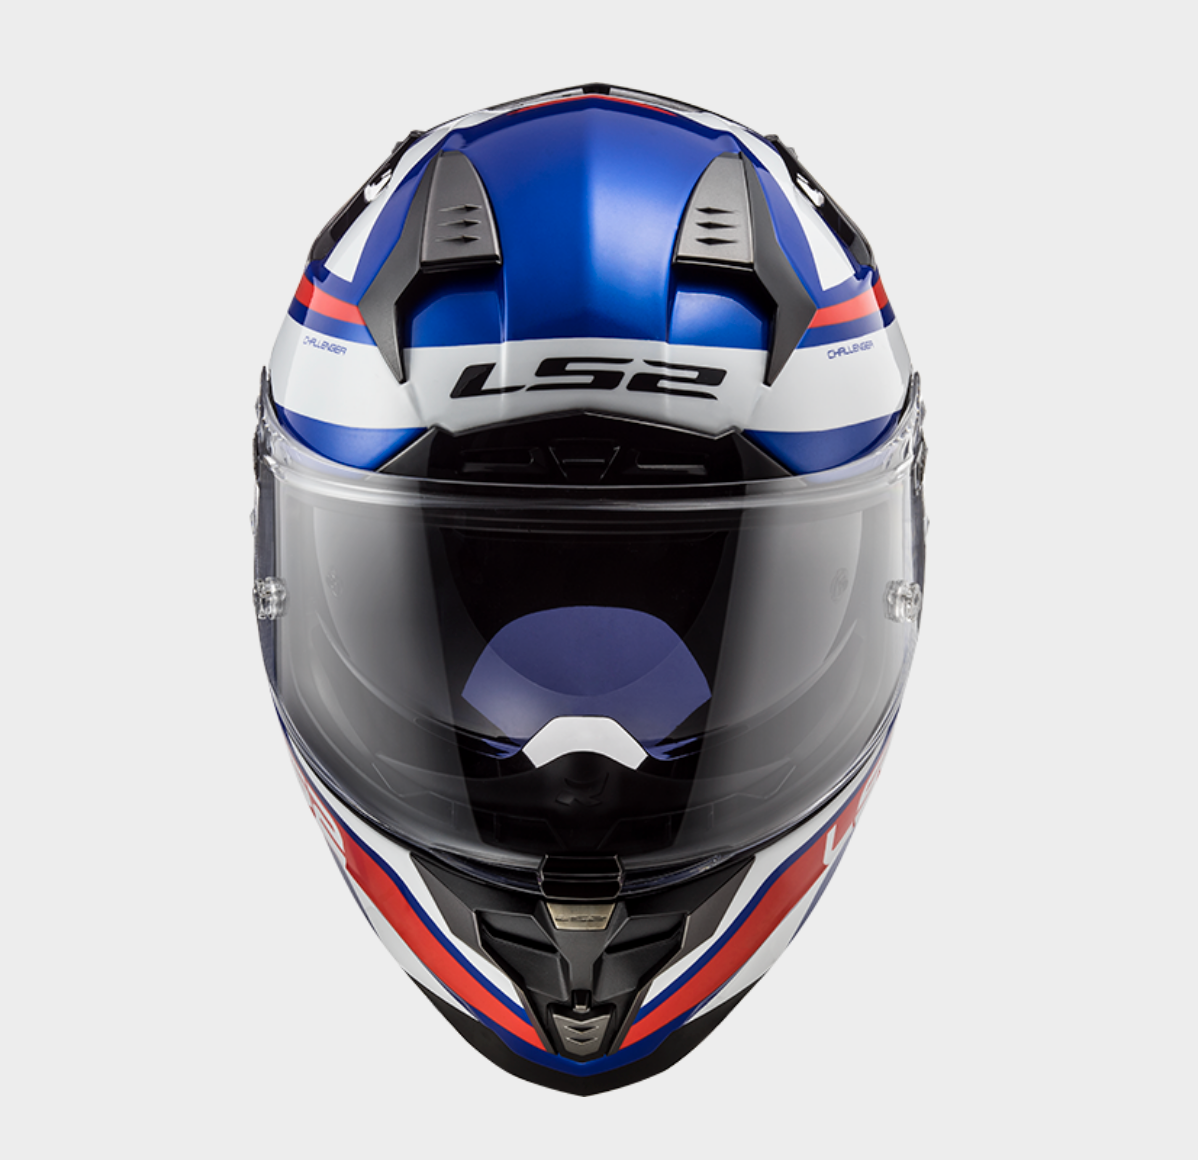 Challenger HPFC Fusion, Helmet, LS2 - Averys Motorcycles